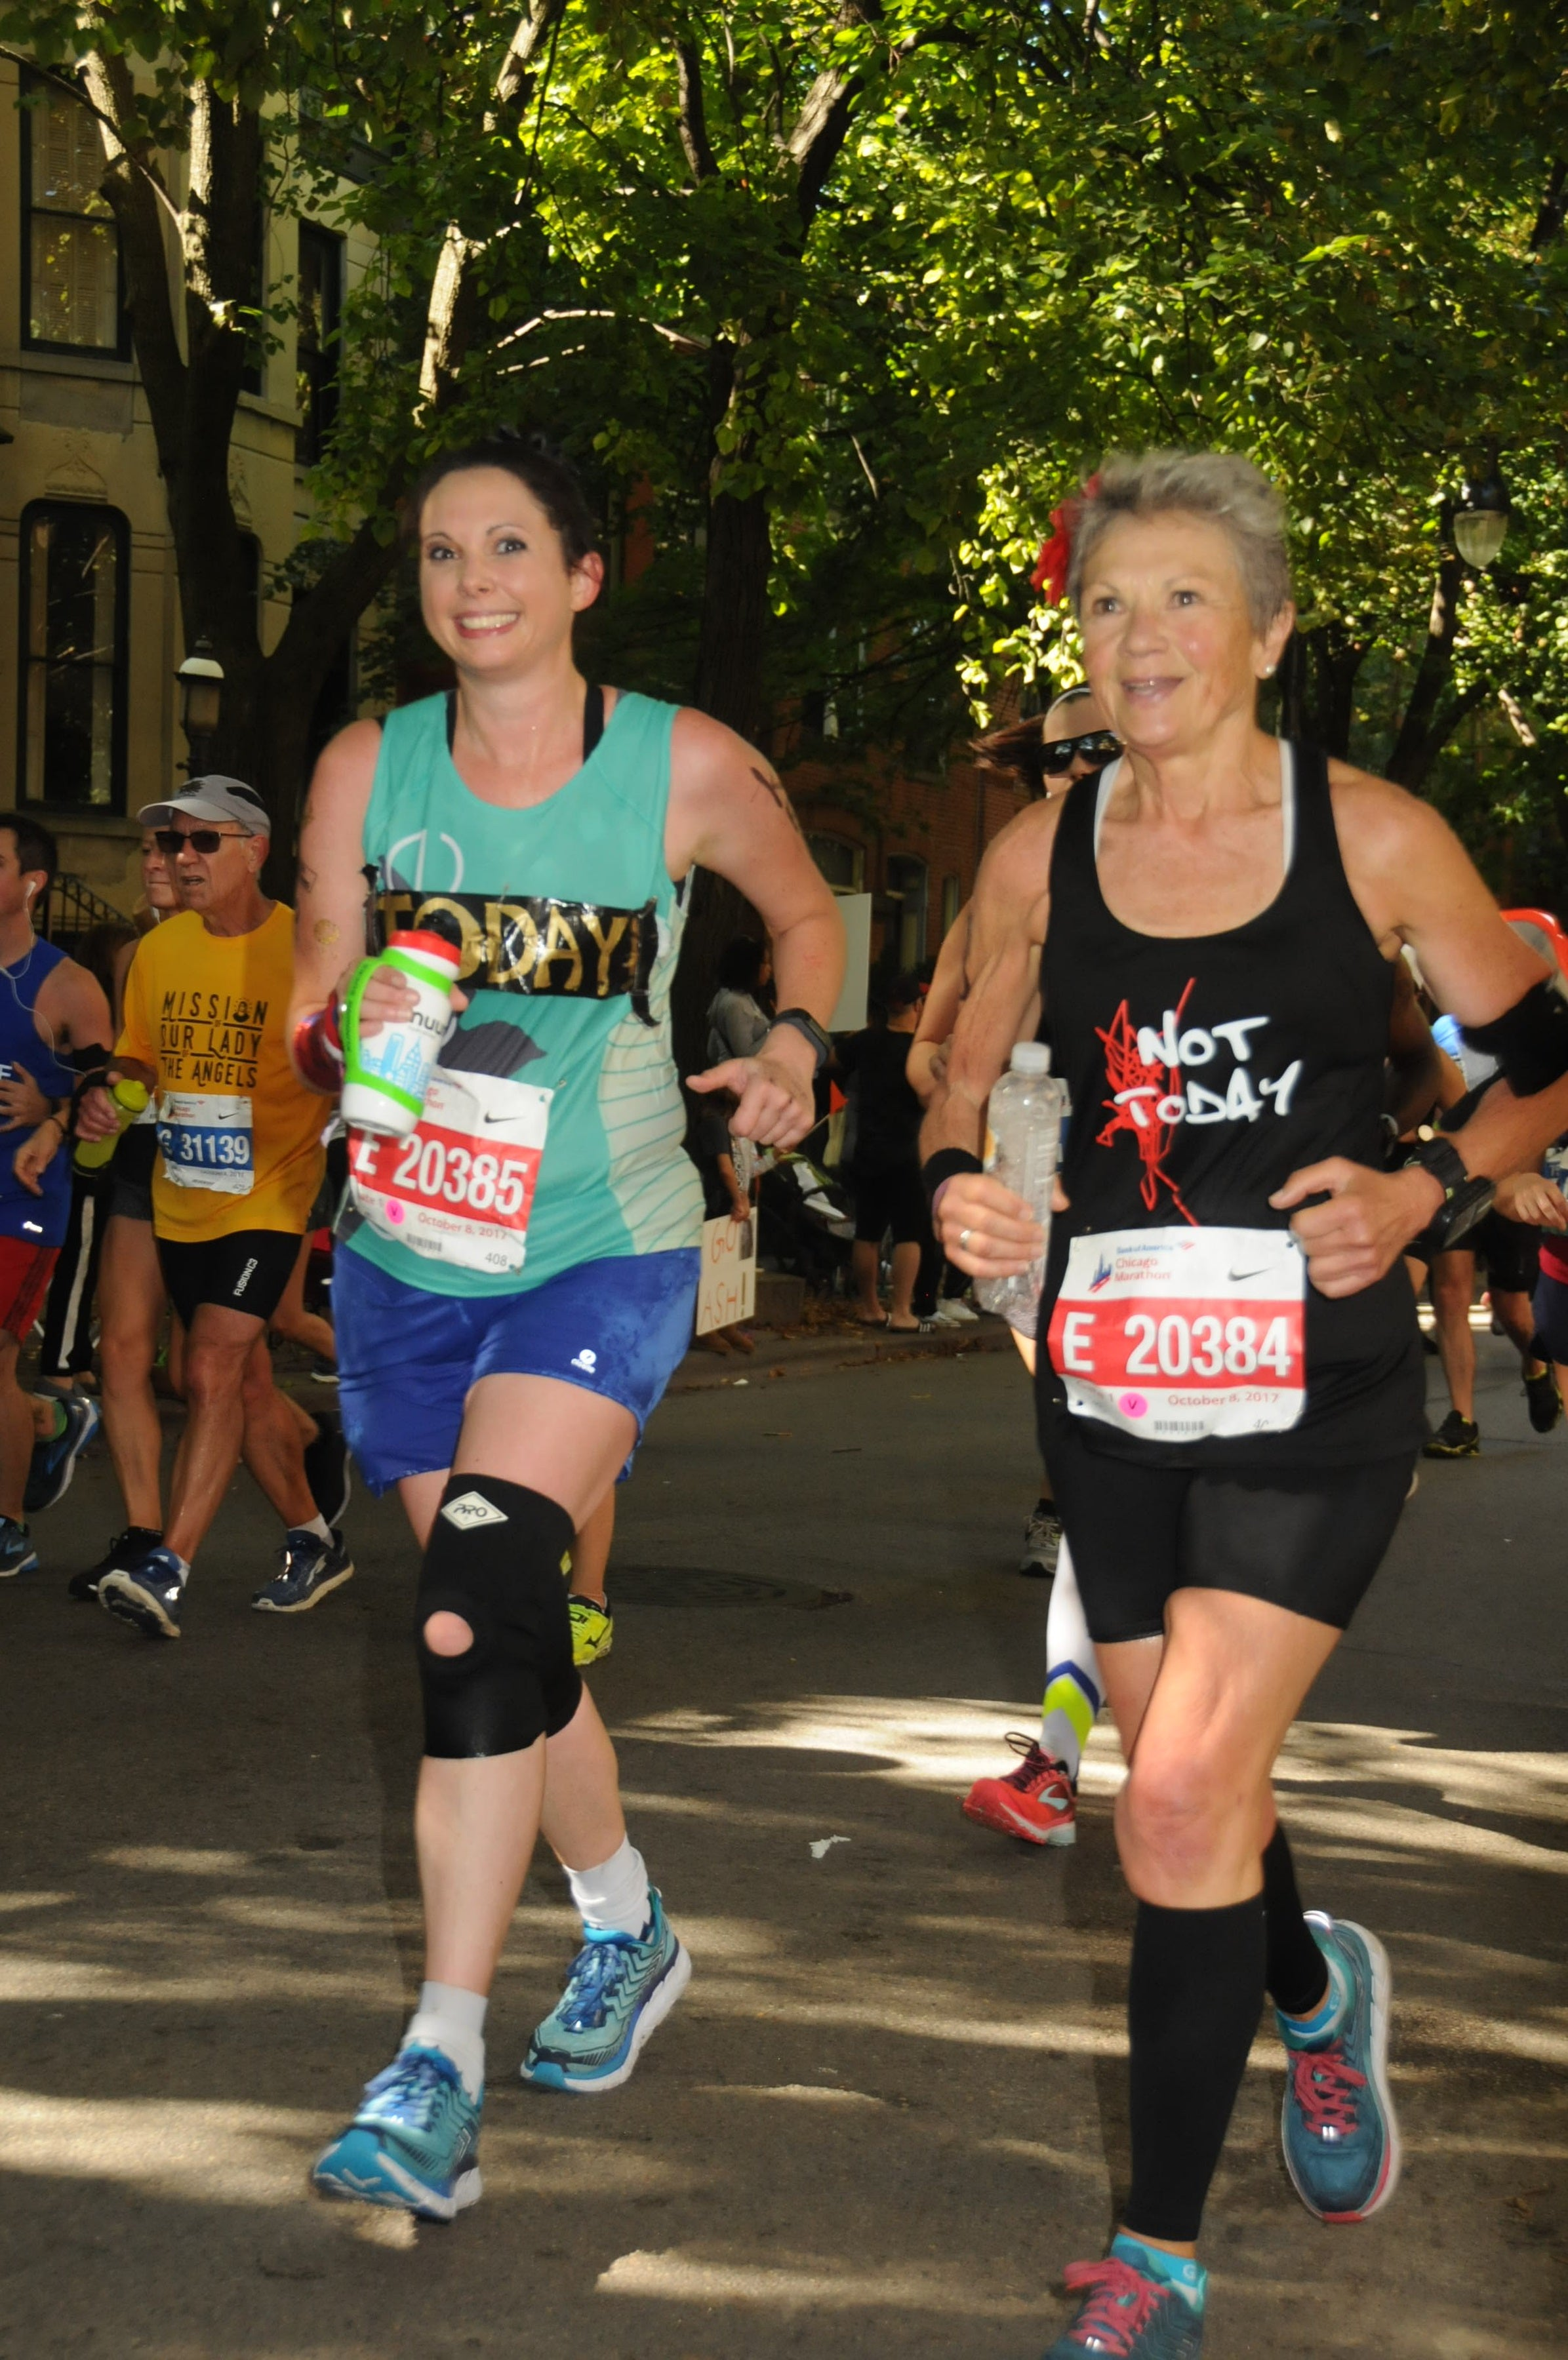 Kelly Herron and her mom run together during a race